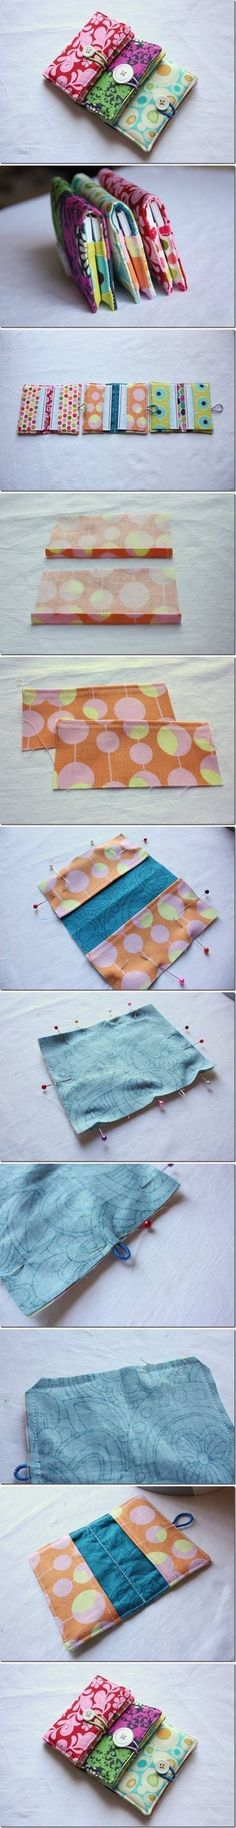 DIY Sew Business Card Holder   I often see this and forget to pin it so todays the day! could be nice little gifts or stocking stuffers too!